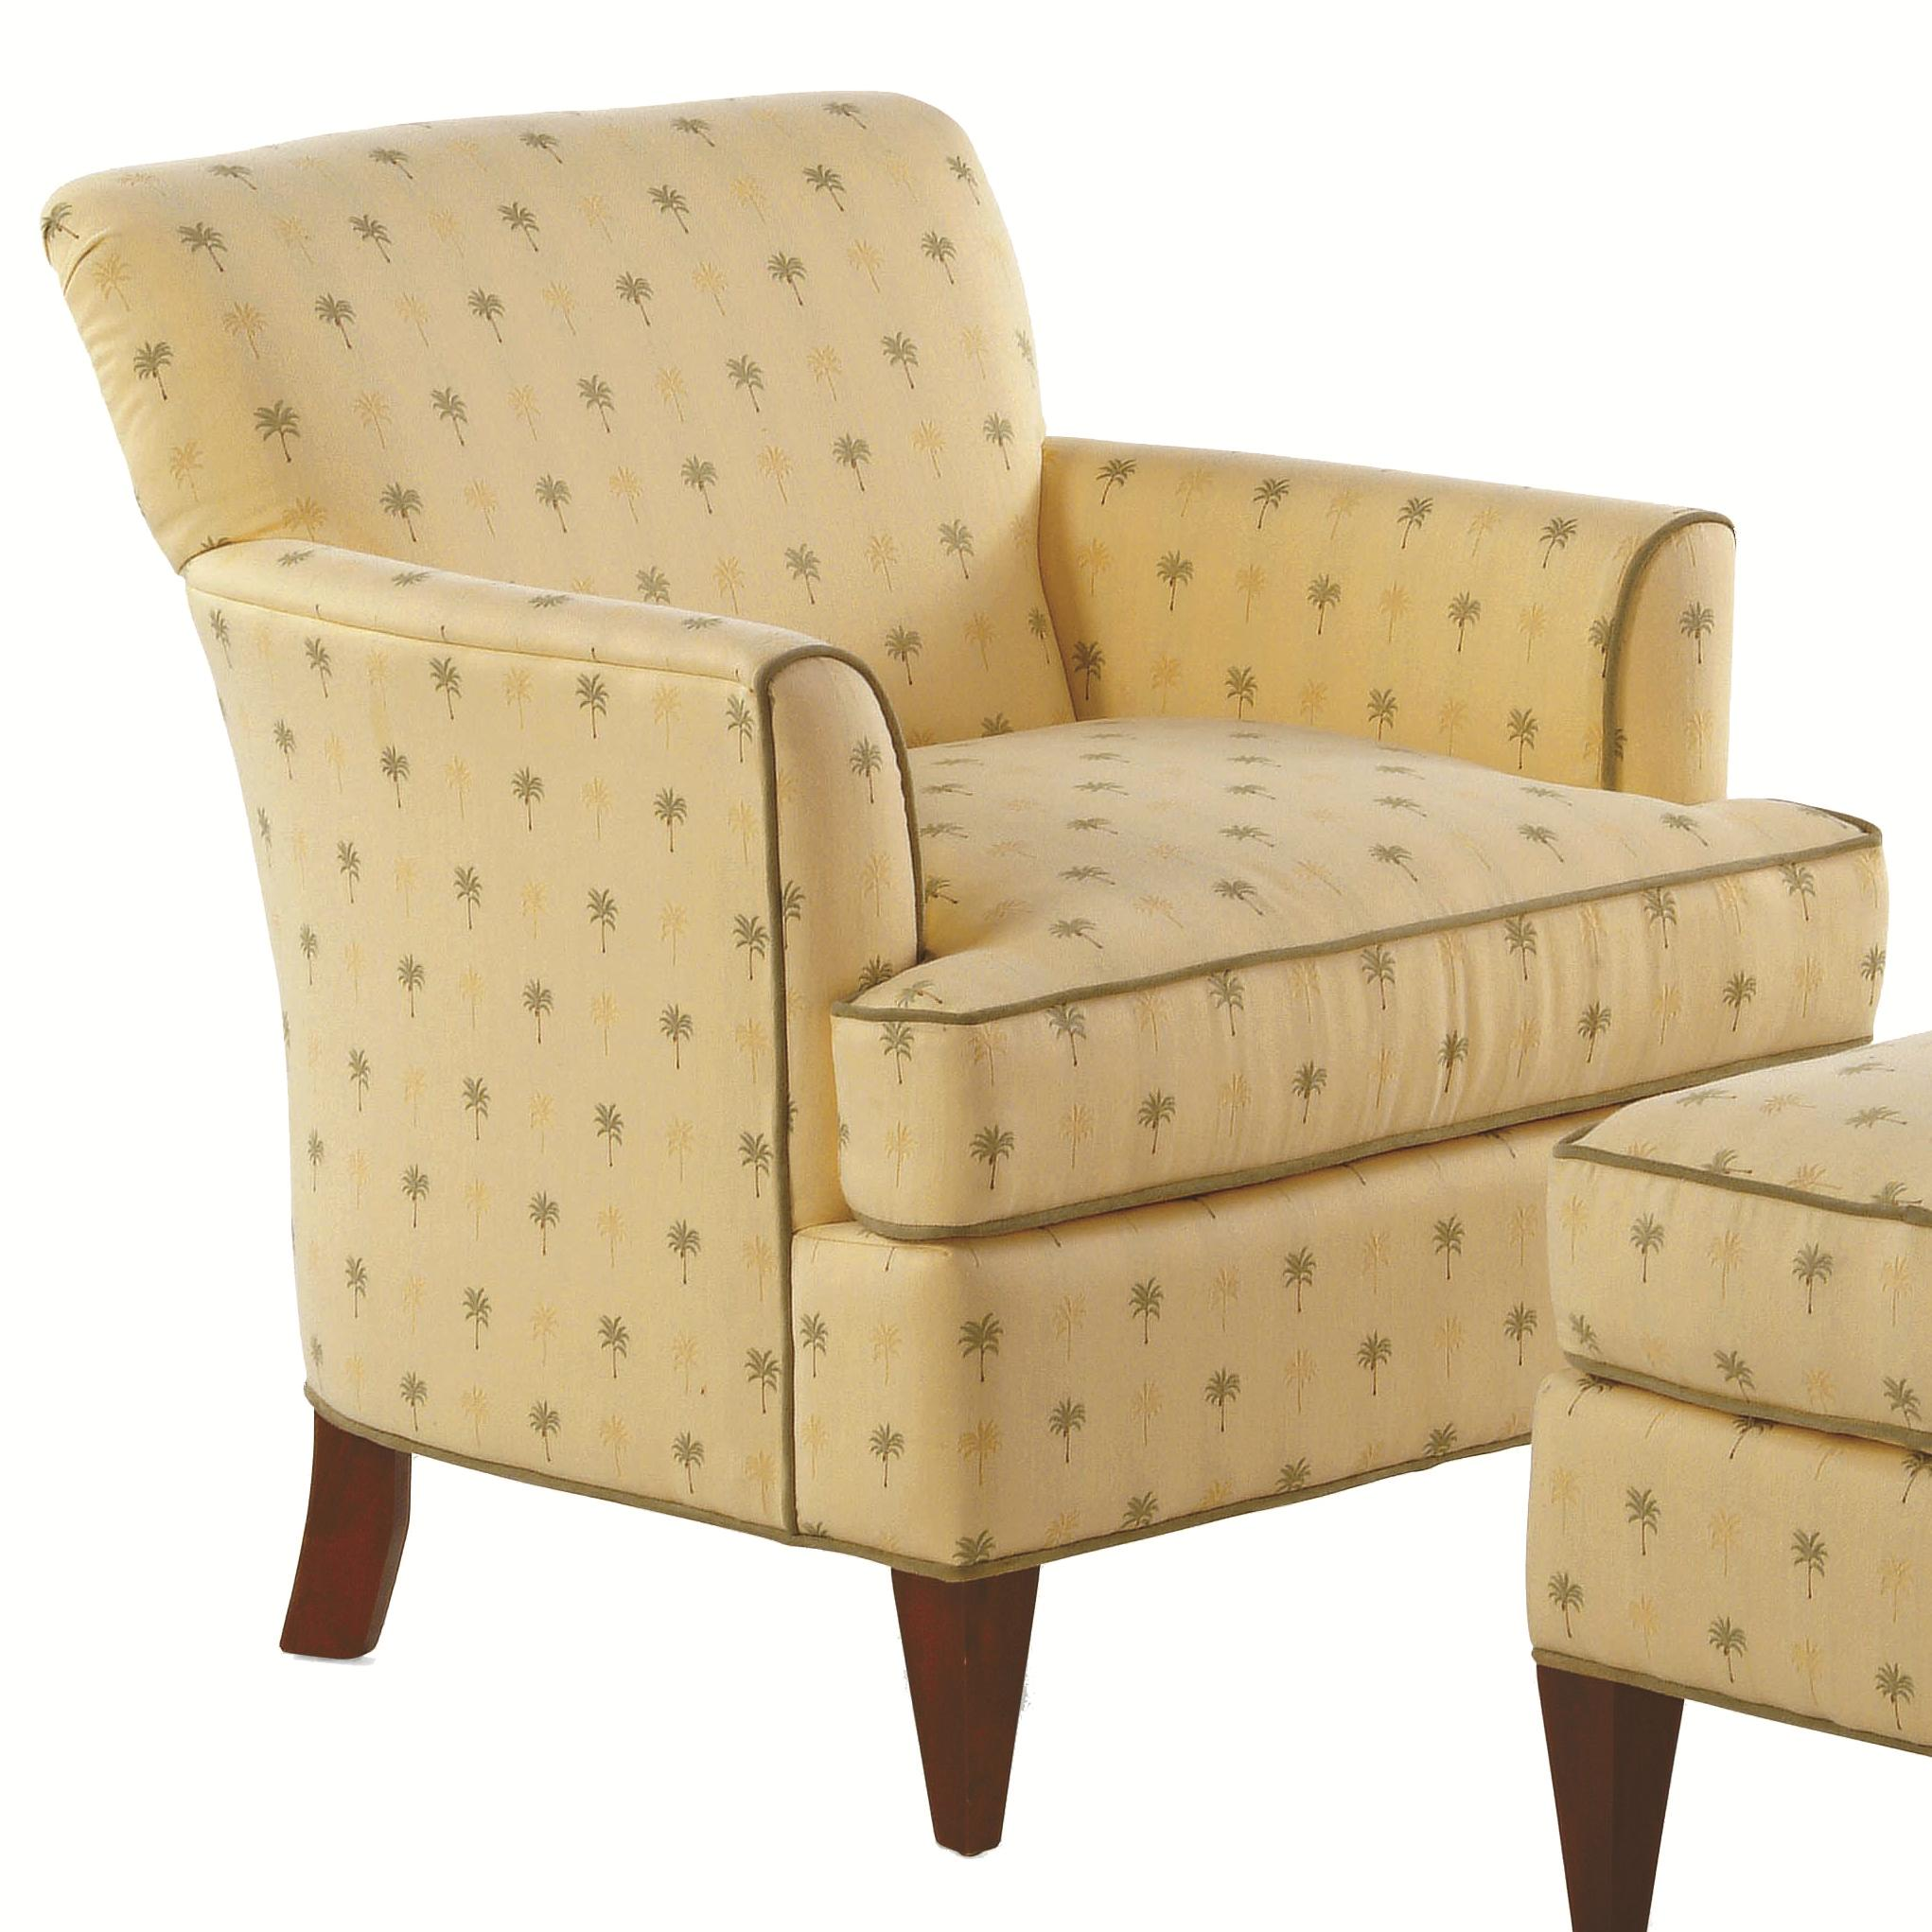 Tuscany Upholstered Chair